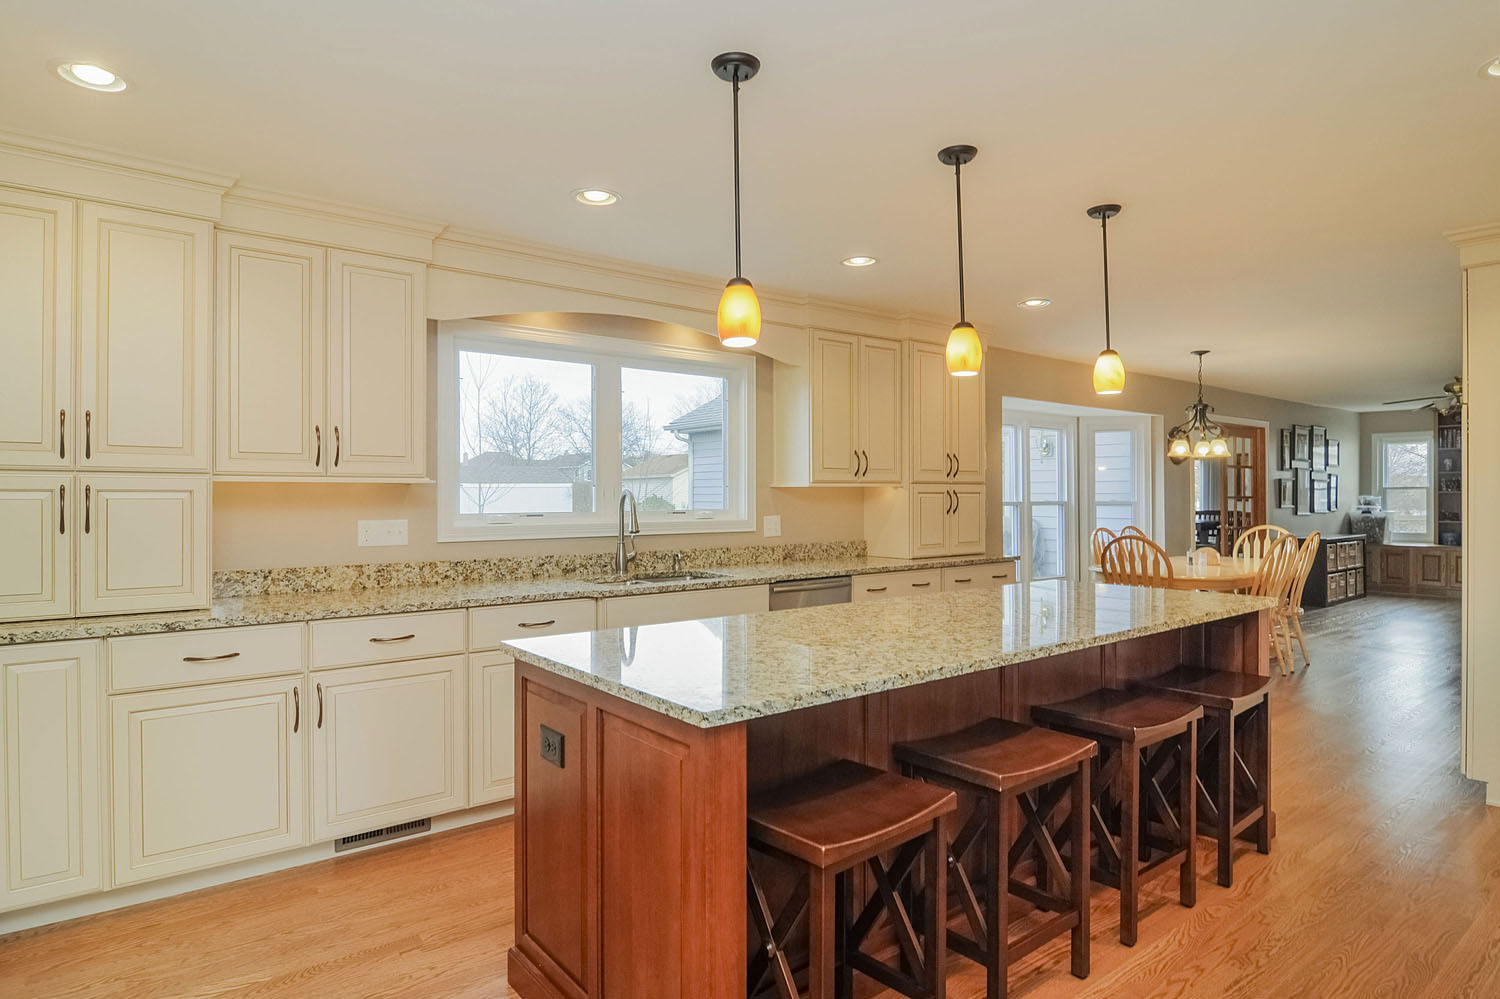 Kitchen Remodeling Ideas Wood Cabinetry Light Granite Carol Stream Il Illinois Sebring Services